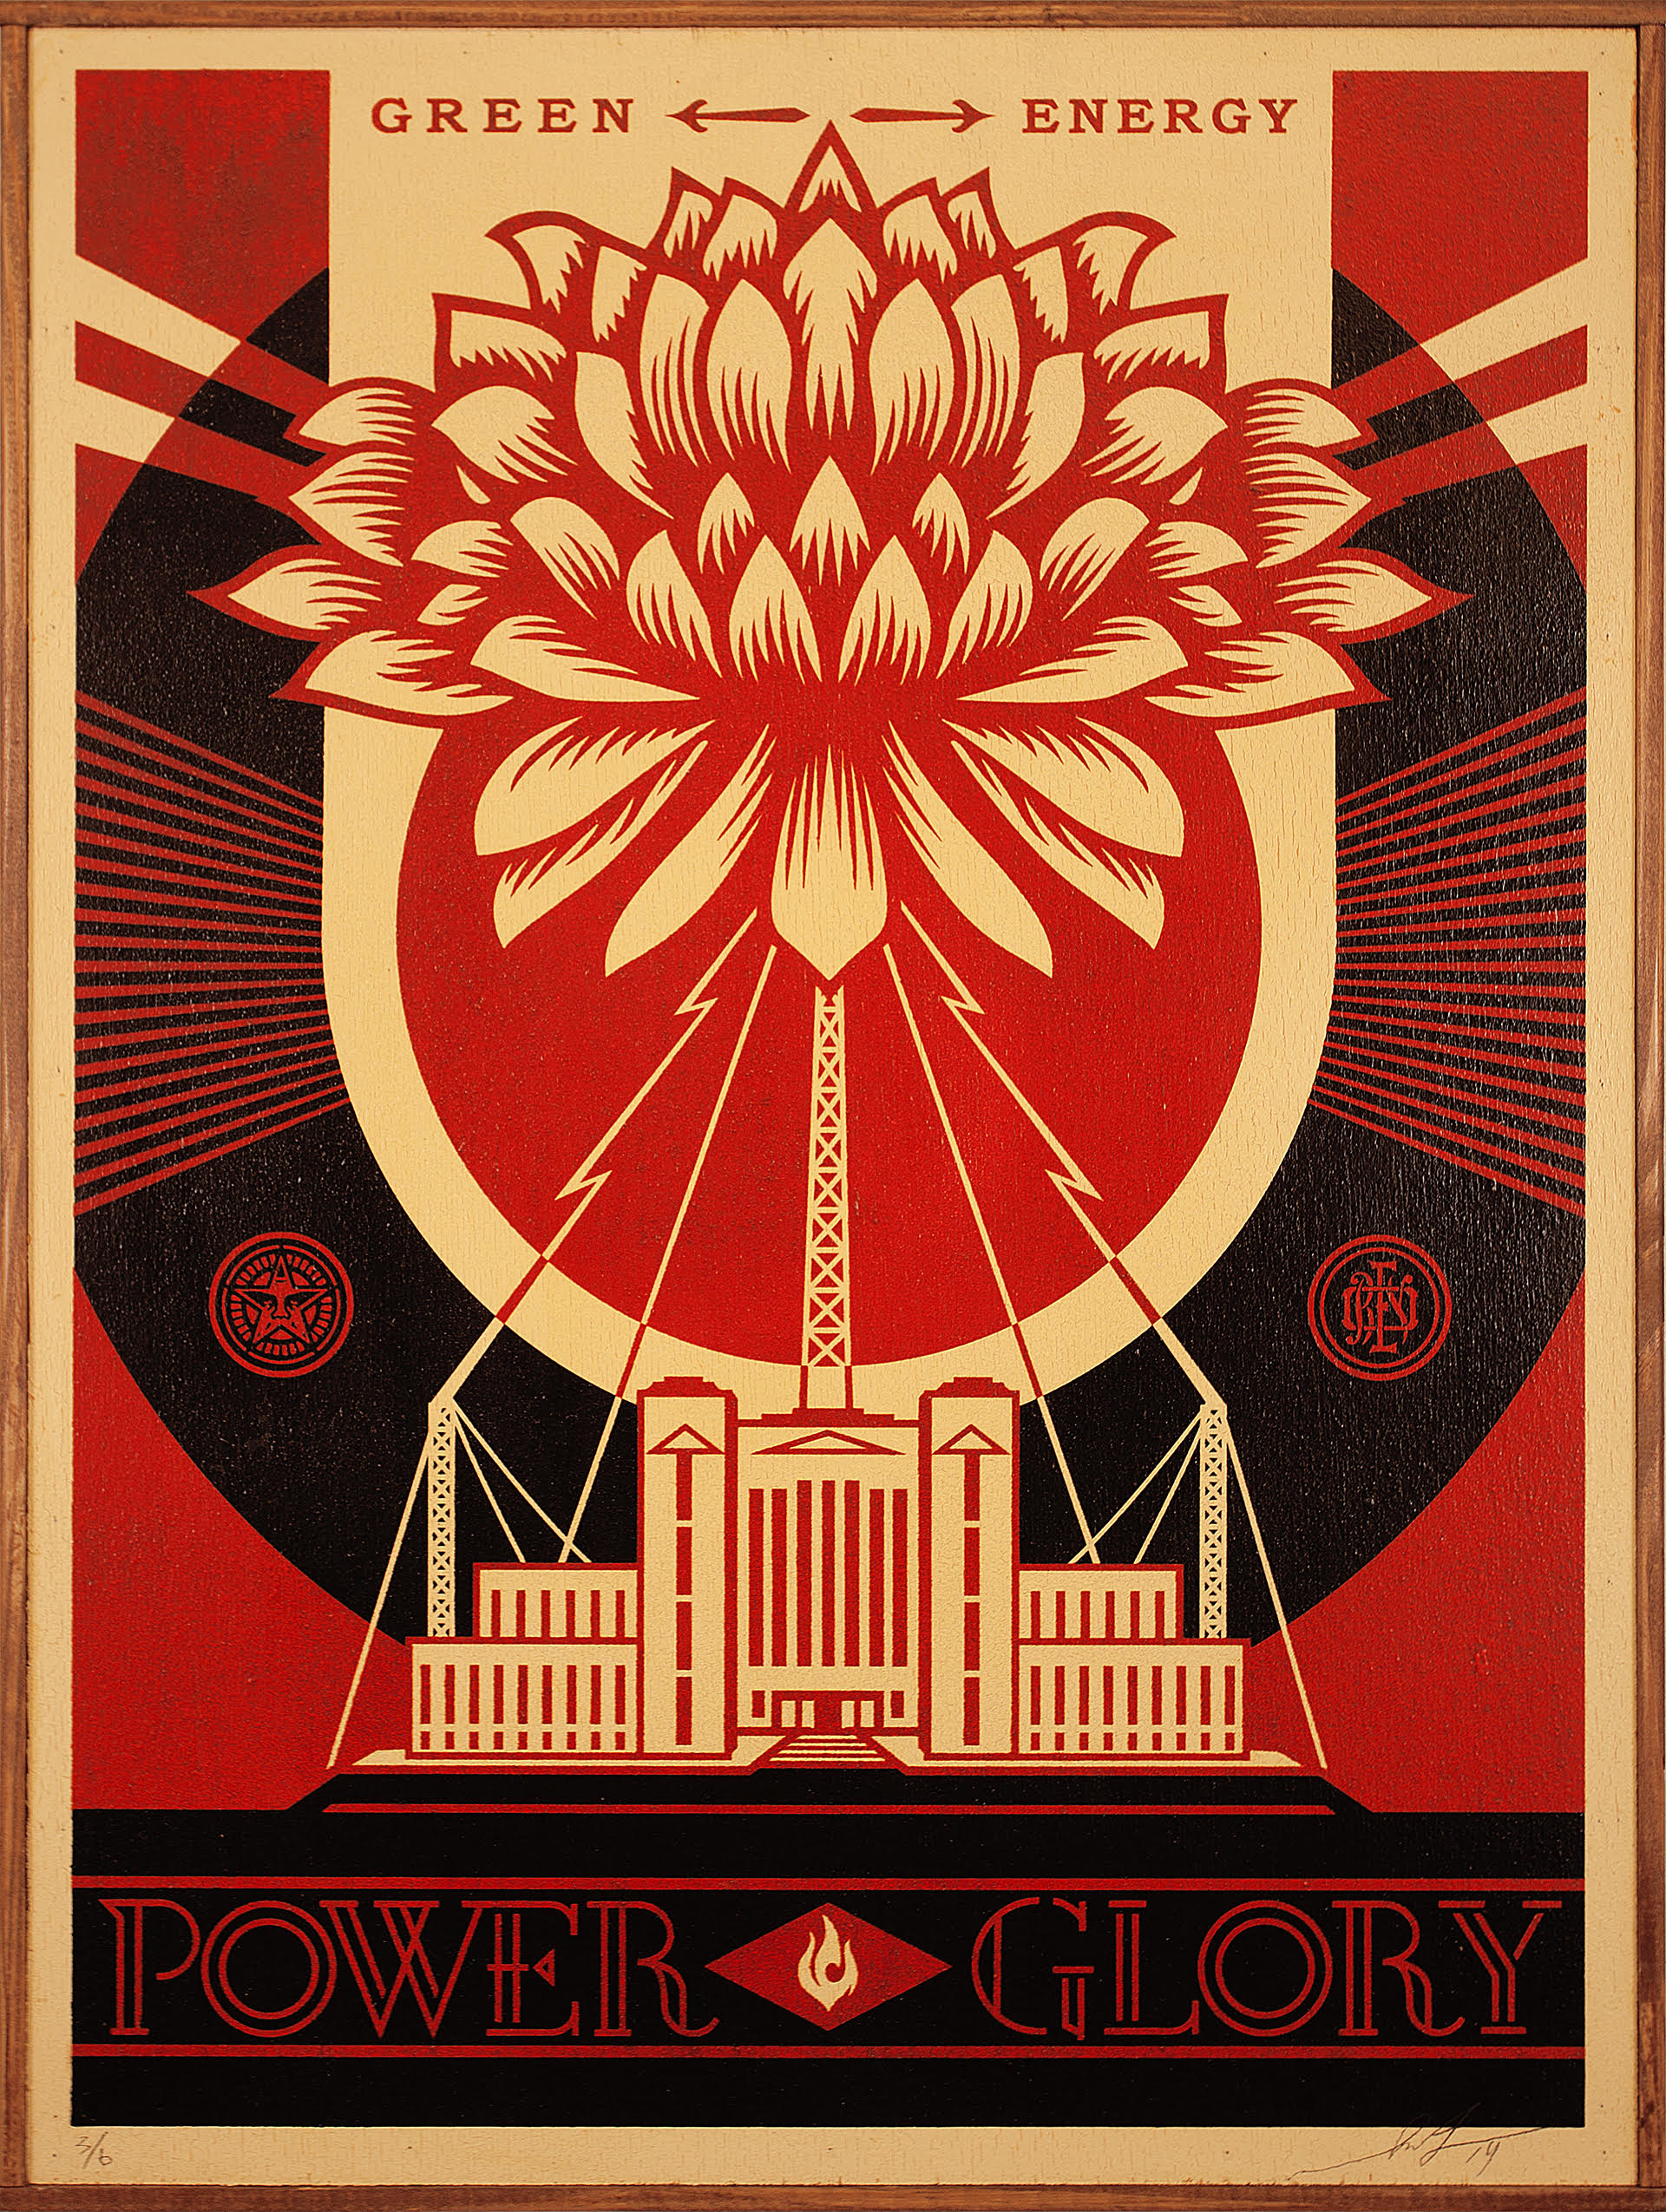 Shepard Fairey - Green PowerPresented by Subliminal Projects - As one of the world's most provocative contemporary artists, Shepard Fairey's career is founded on the ability to create powerful visual imagery coupled with rousing calls to action. Green Power is a selection of works curated especially for Creating Equilibrium from the environmentally themed Earth Crisis exhibition in Paris last year, which was an extension of his groundbreaking Earth Crisis Globe installation at the Eiffel Tower in 2015.  Green Power presents select pieces from that series and related works in silk-screen on wood panels to the Lake Tahoe area for the first time.